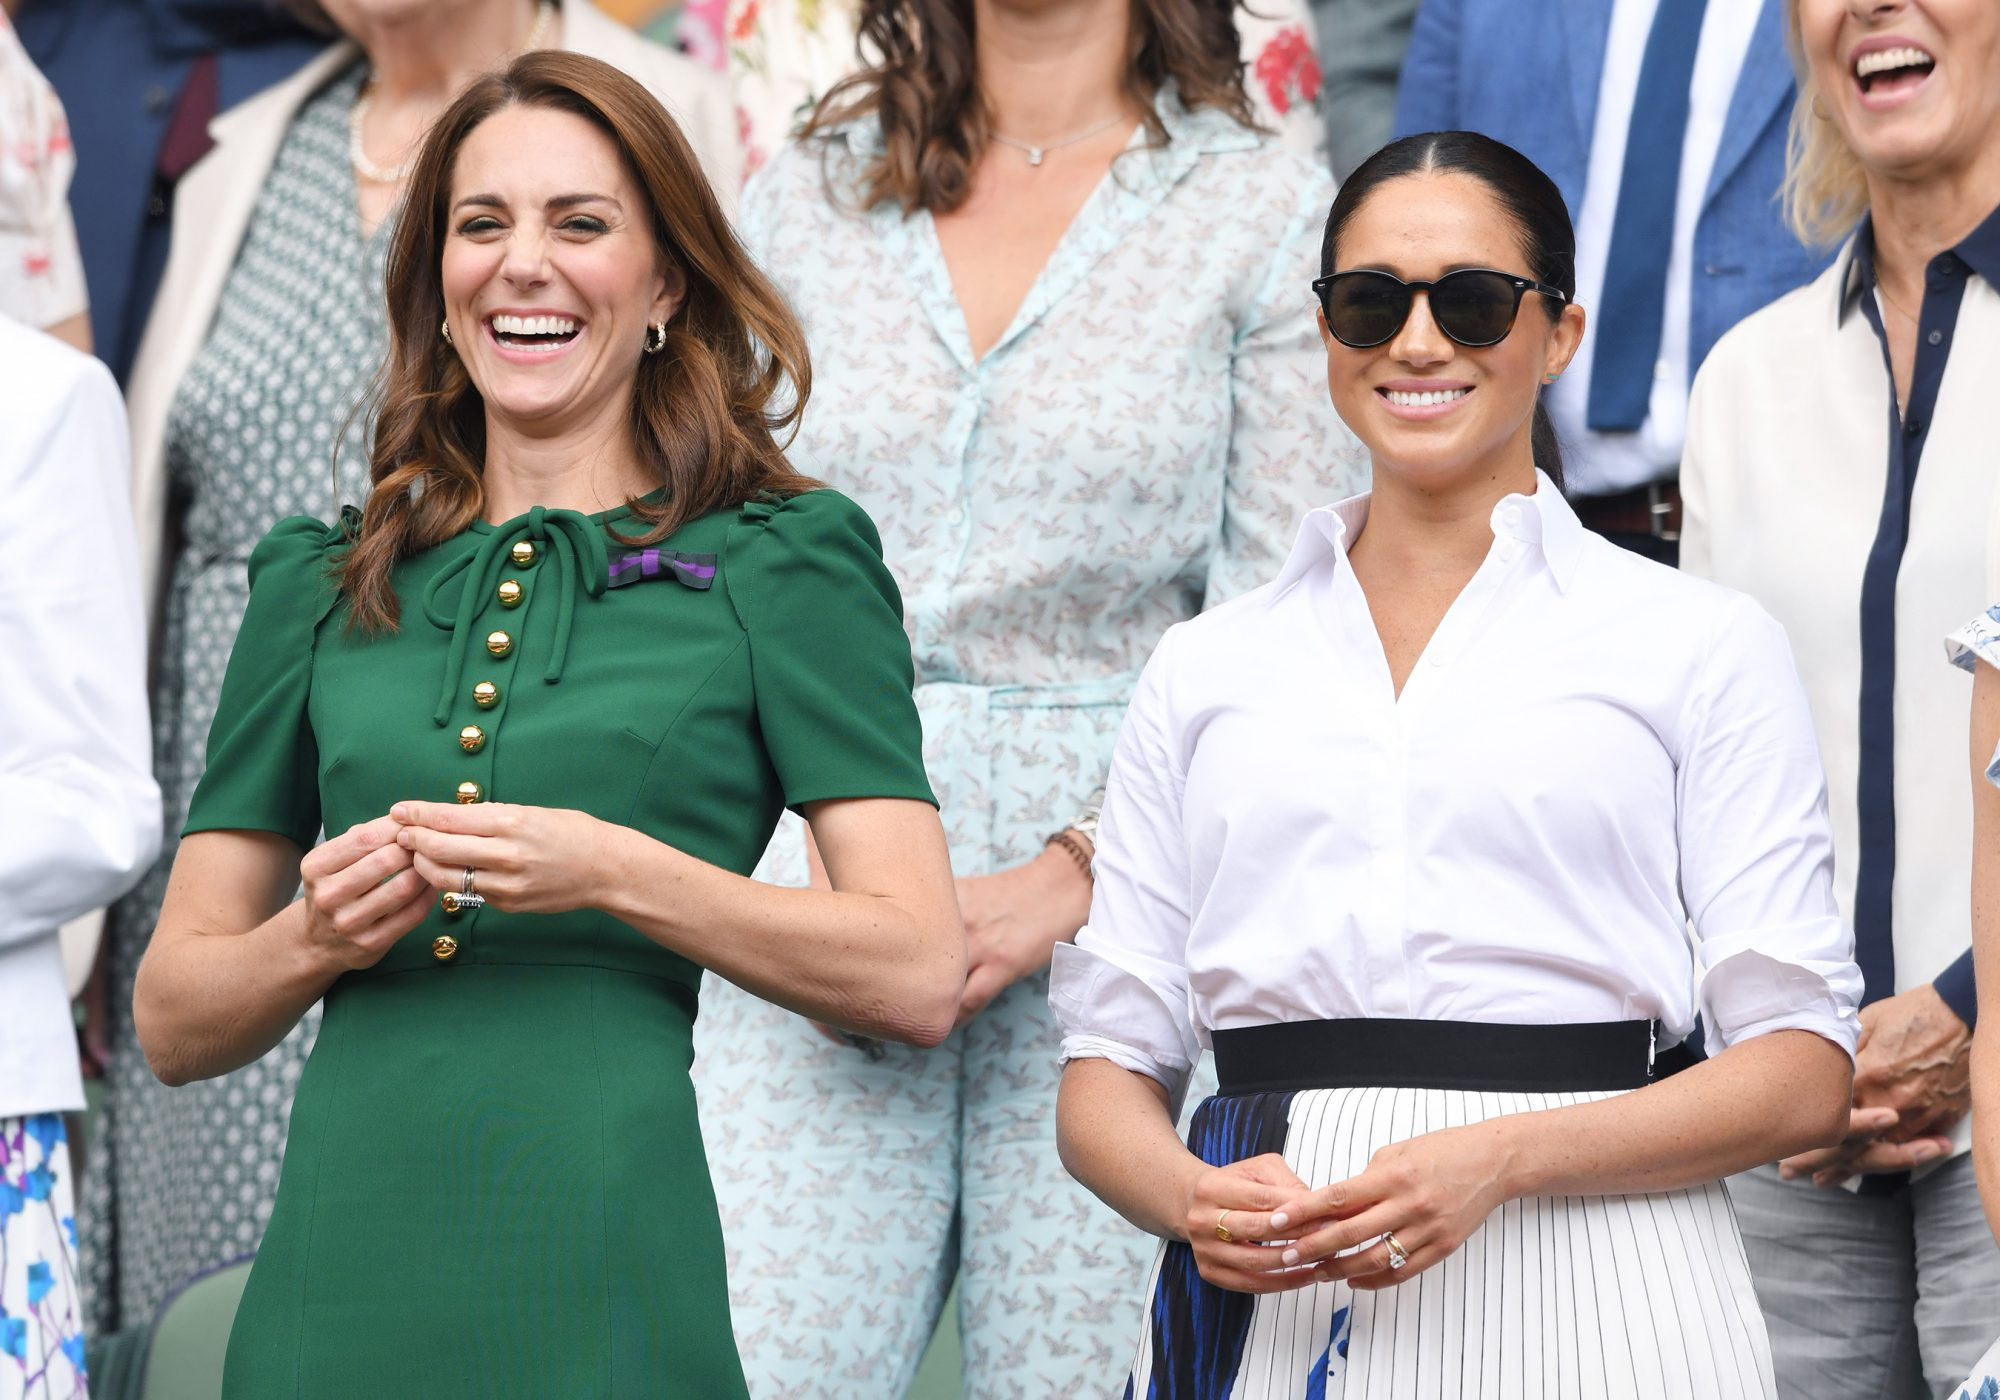 LONDON, ENGLAND - JULY 13: Catherine, Duchess of Cambridge and Meghan, Duchess of Sussex in the Royal Box on Centre Court during day twelve of the Wimbledon Tennis Championships at All England Lawn Tennis and Croquet Club on July 13, 2019 in London, England.